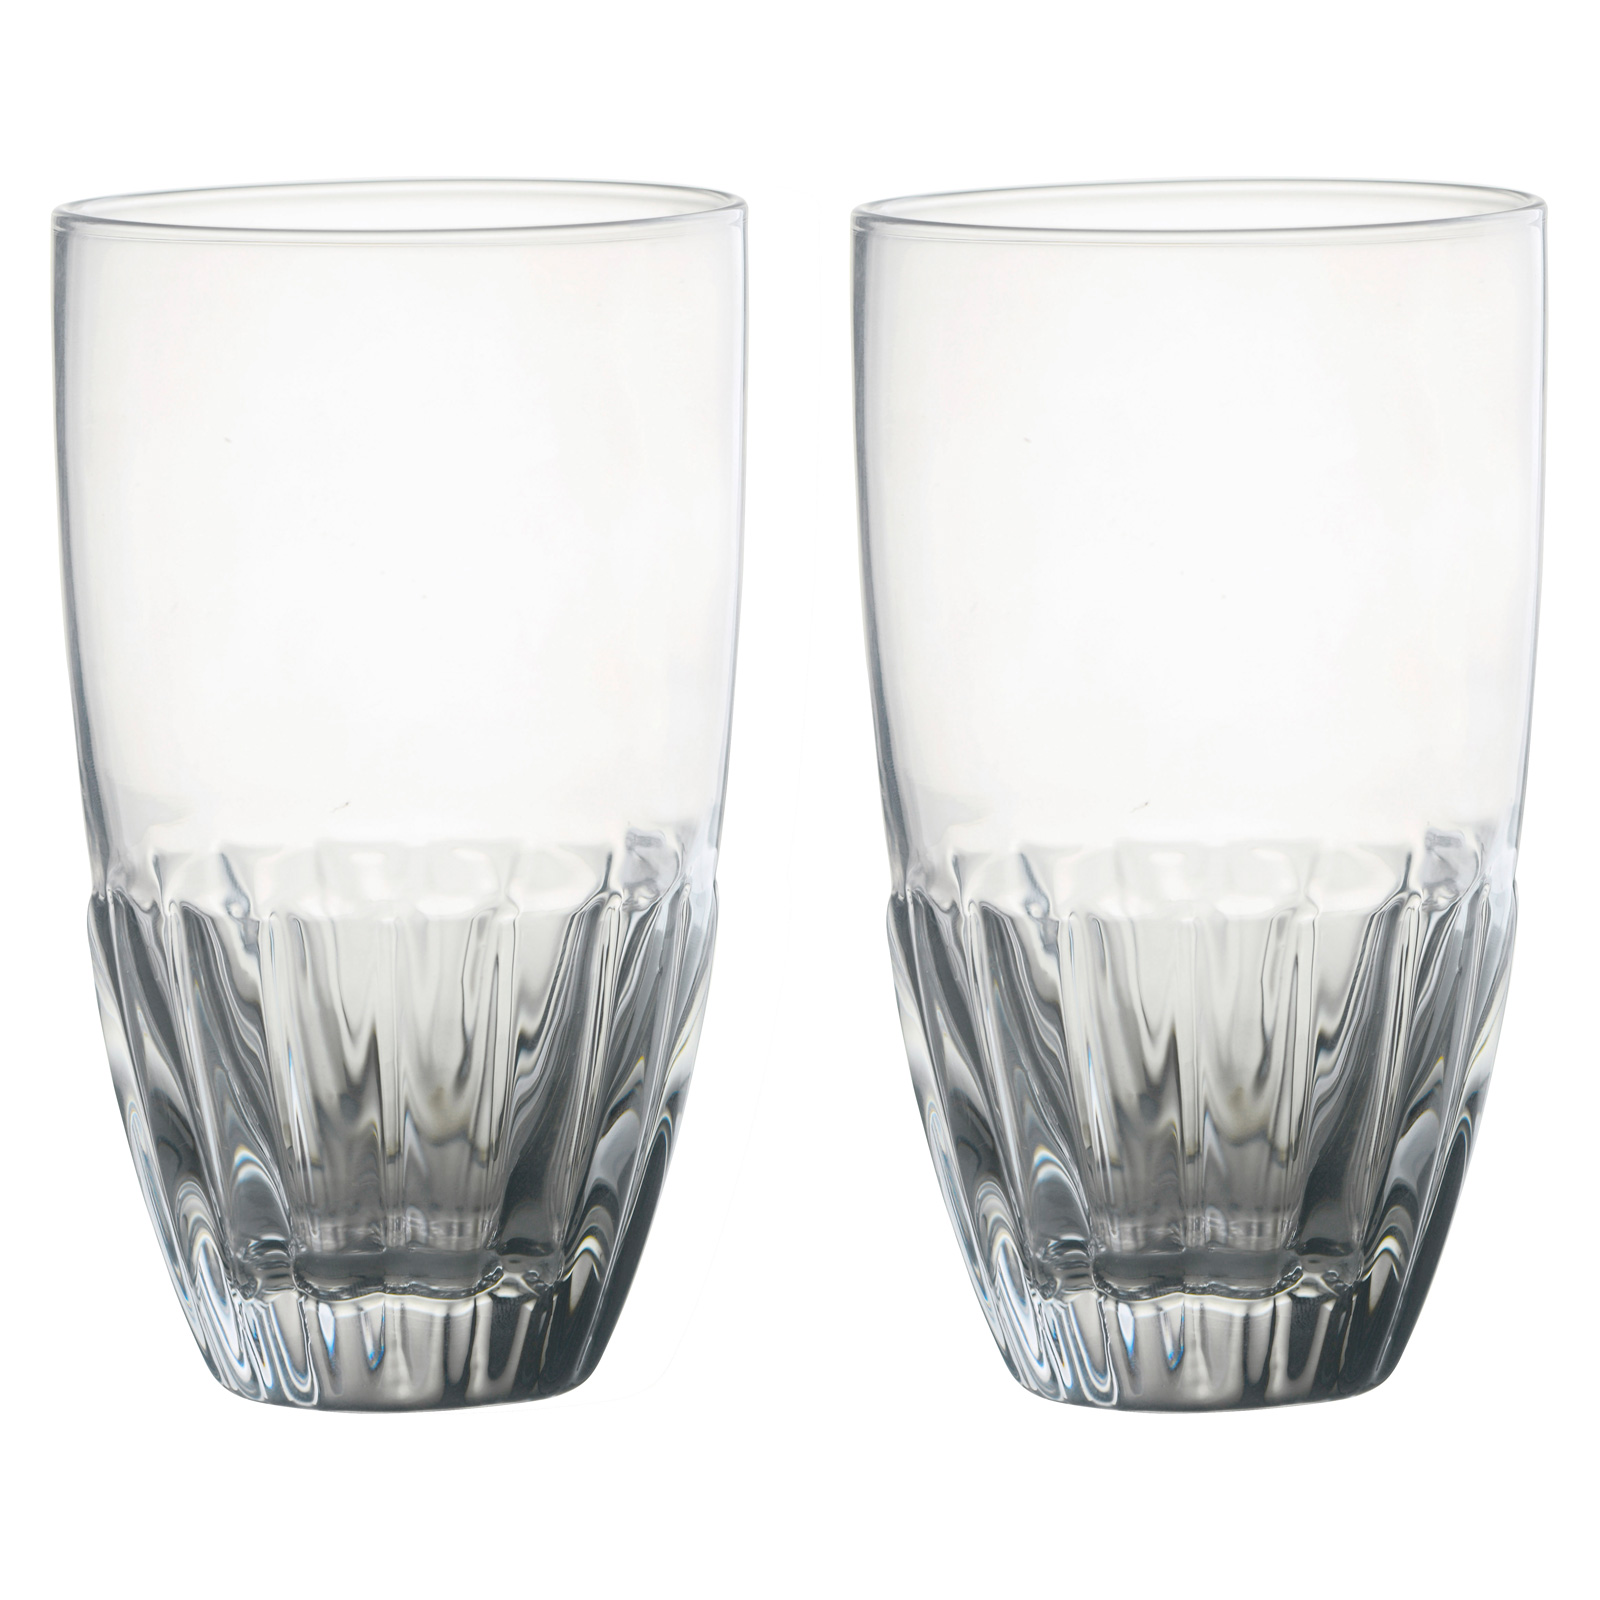 Set of 2 Solar Hiball Tumblers Clear by Anton Studio Designs